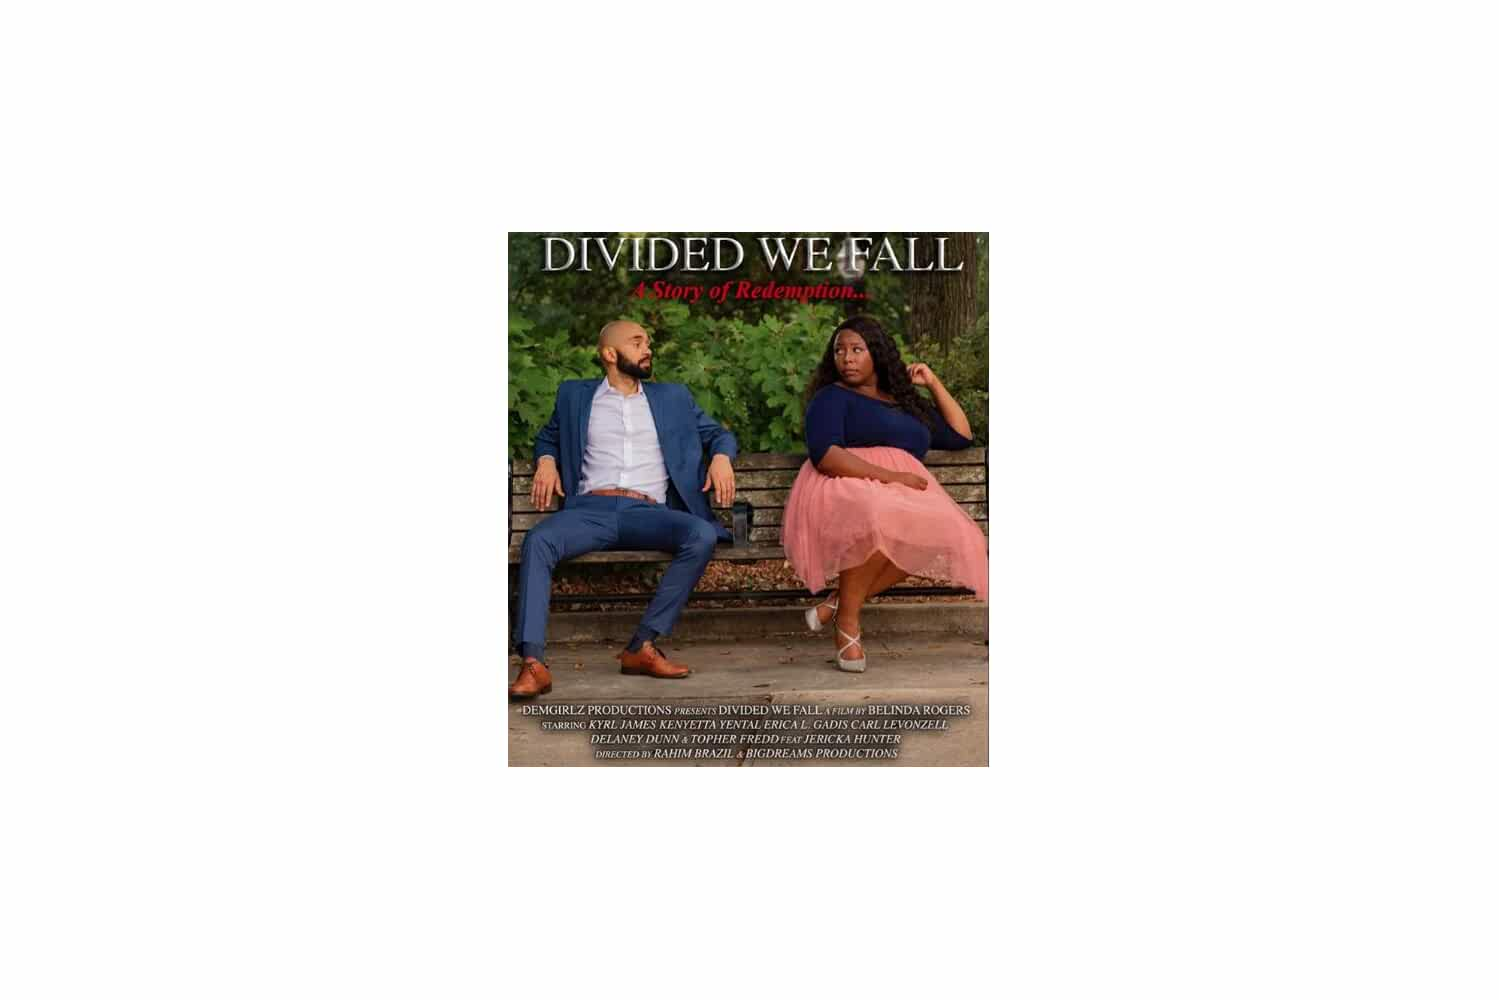 Divided We Fall: A Story of Redemption (2018)